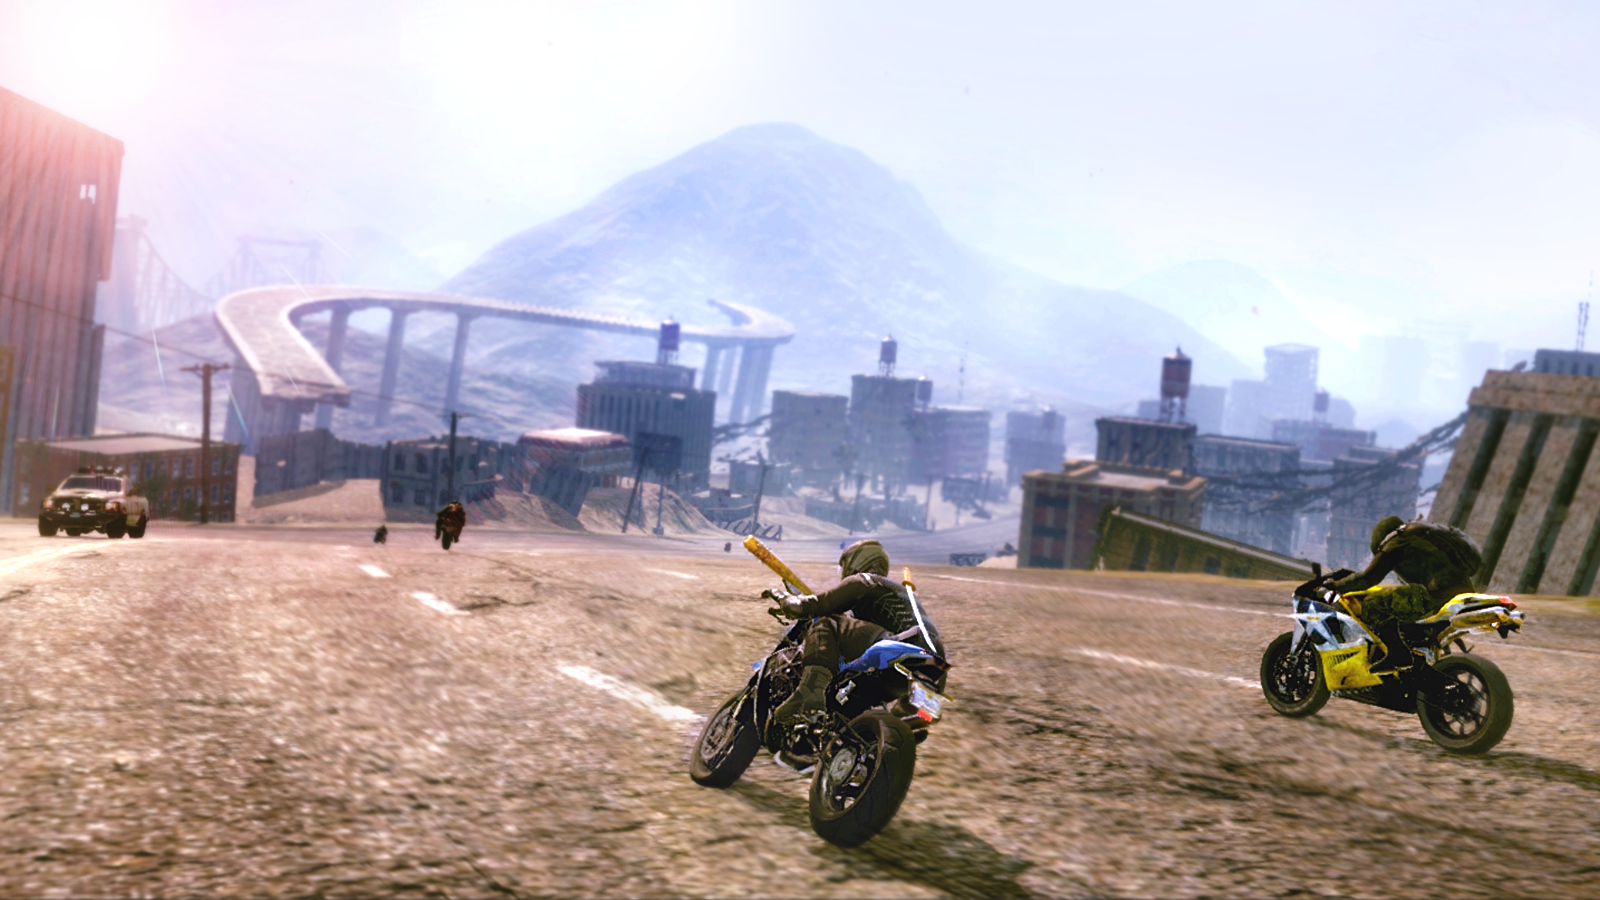 Post apocalyptic scene from Road Redemption